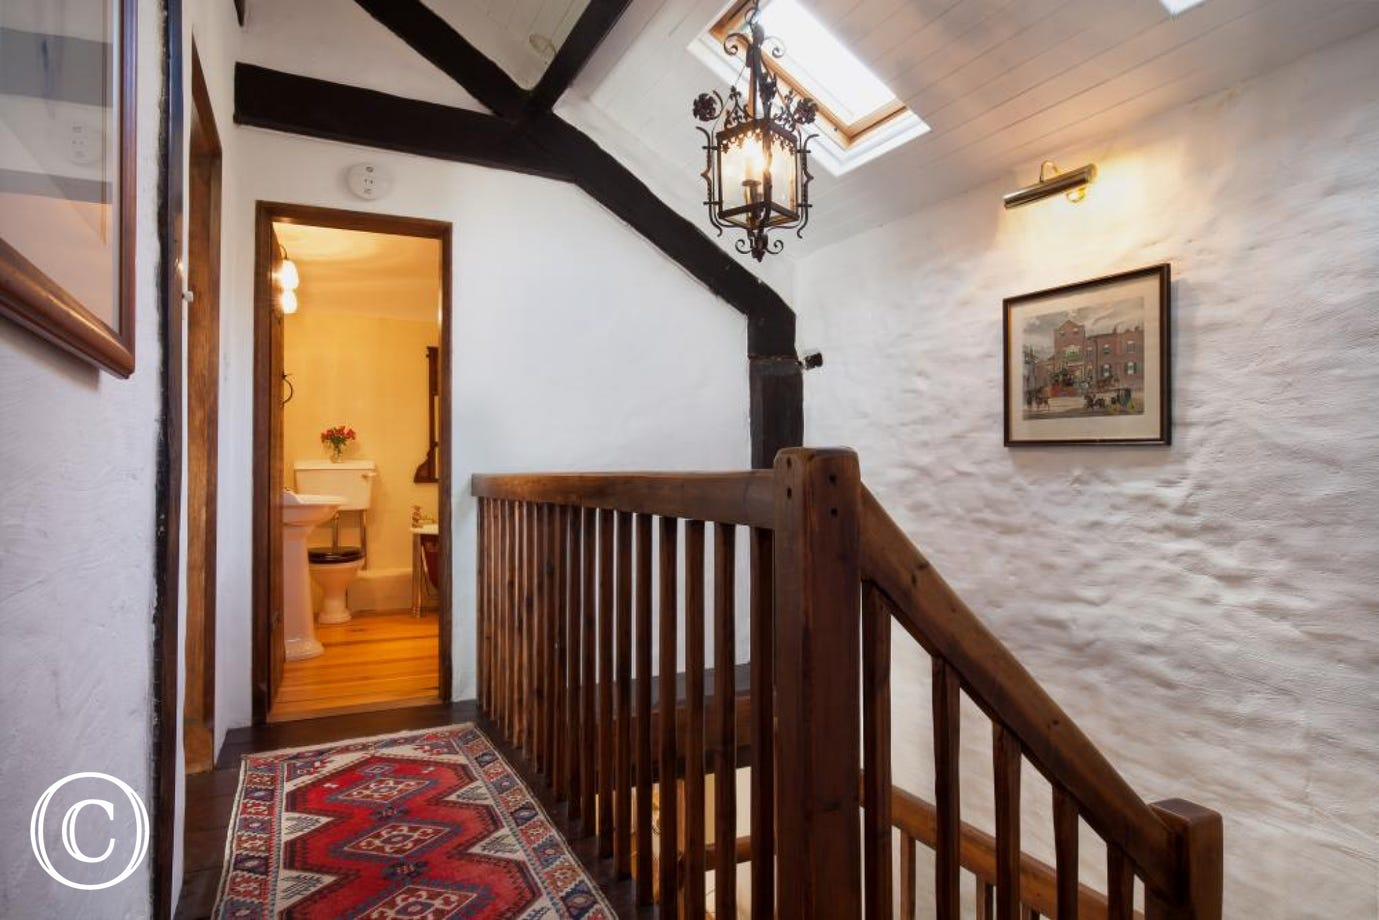 Amazing countryside cottage Hutchinghayes Barn, East Devon, Honiton, Combe Raleigh